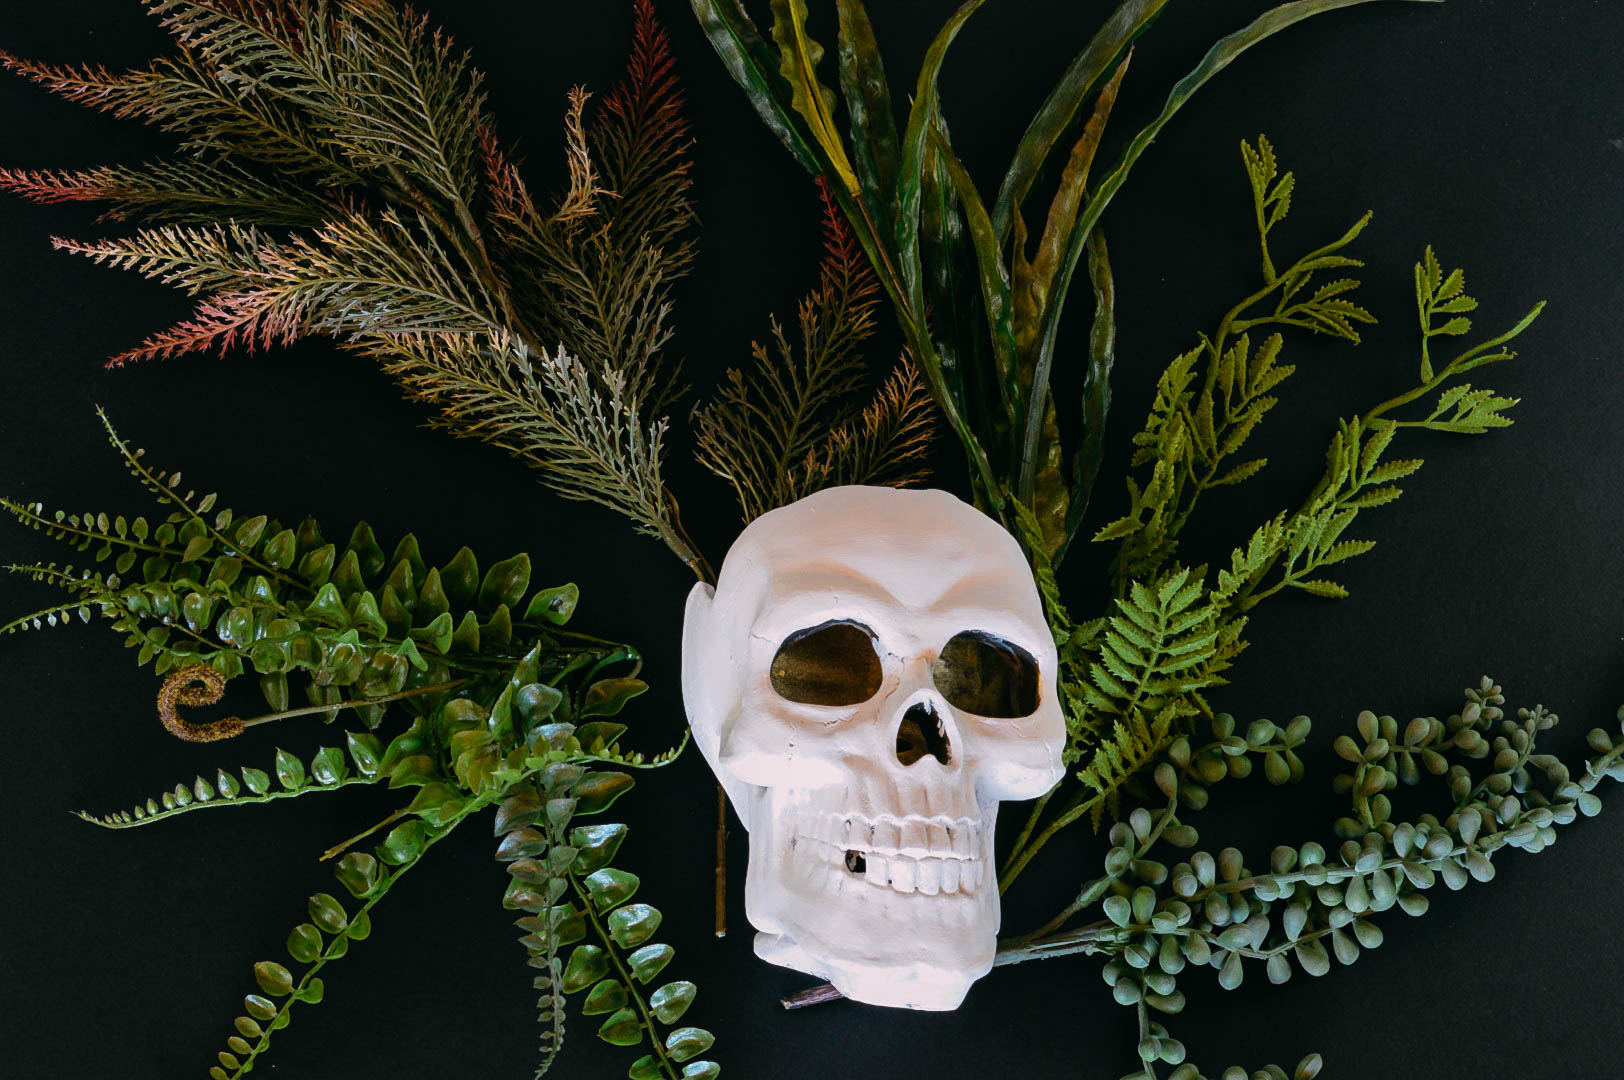 Boho Skull planter | Faux plants | Materials used to create a skull planter